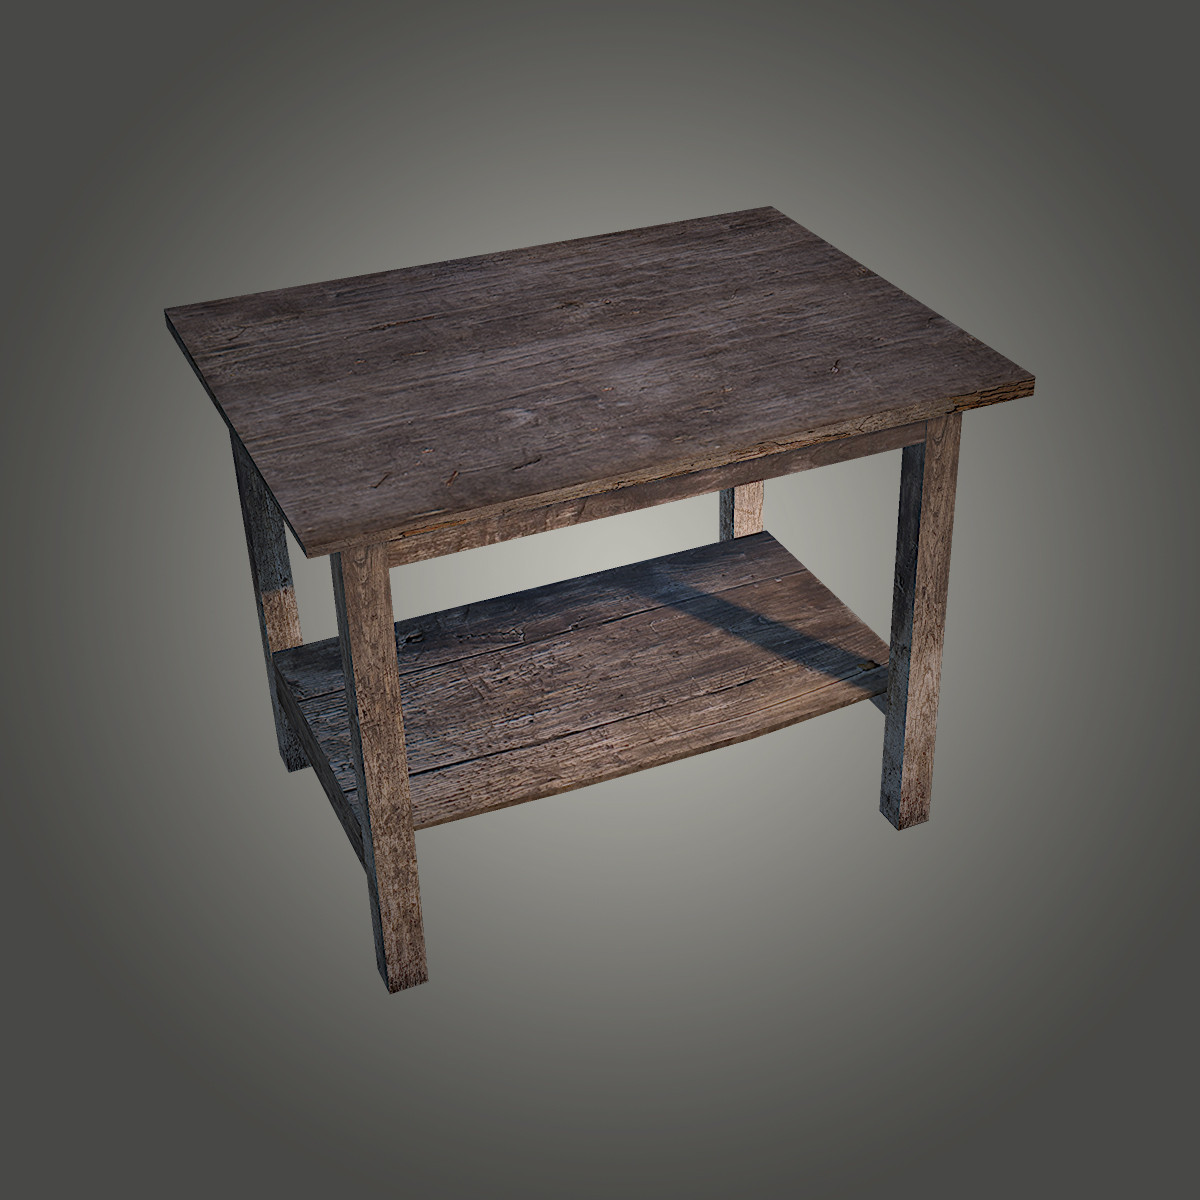 3d model old wooden table for 0co om cca 9 source table